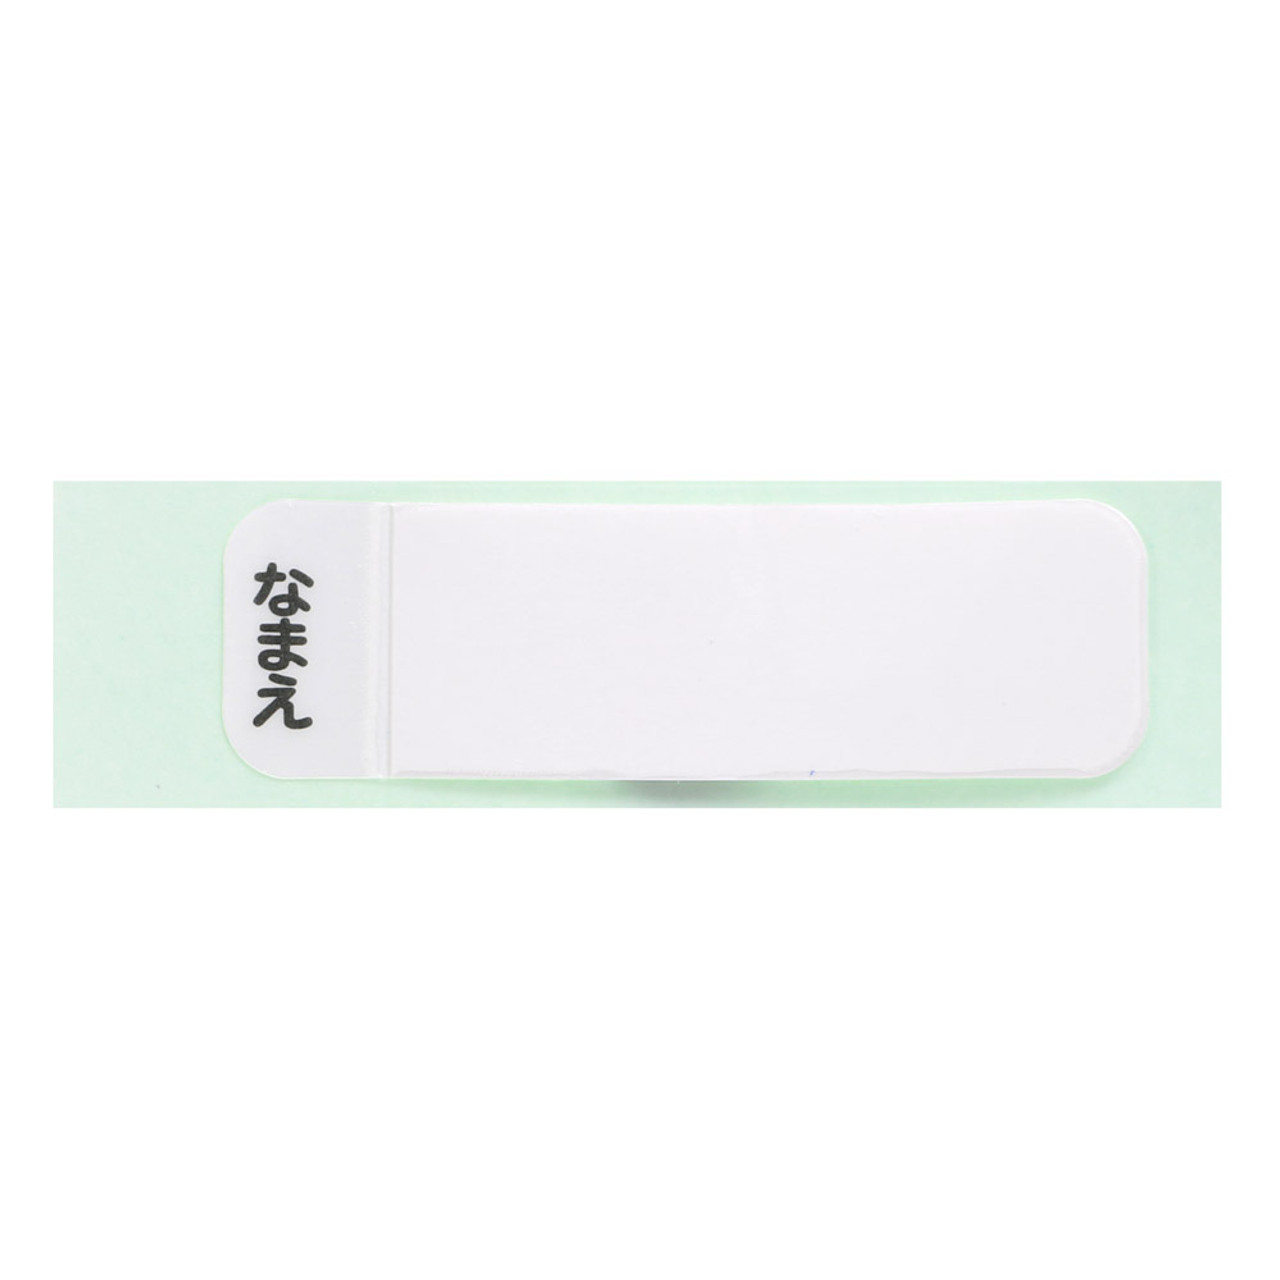 Sanrio Hello Kitty ABS Plastic Cup ( Name Tag Sticker )